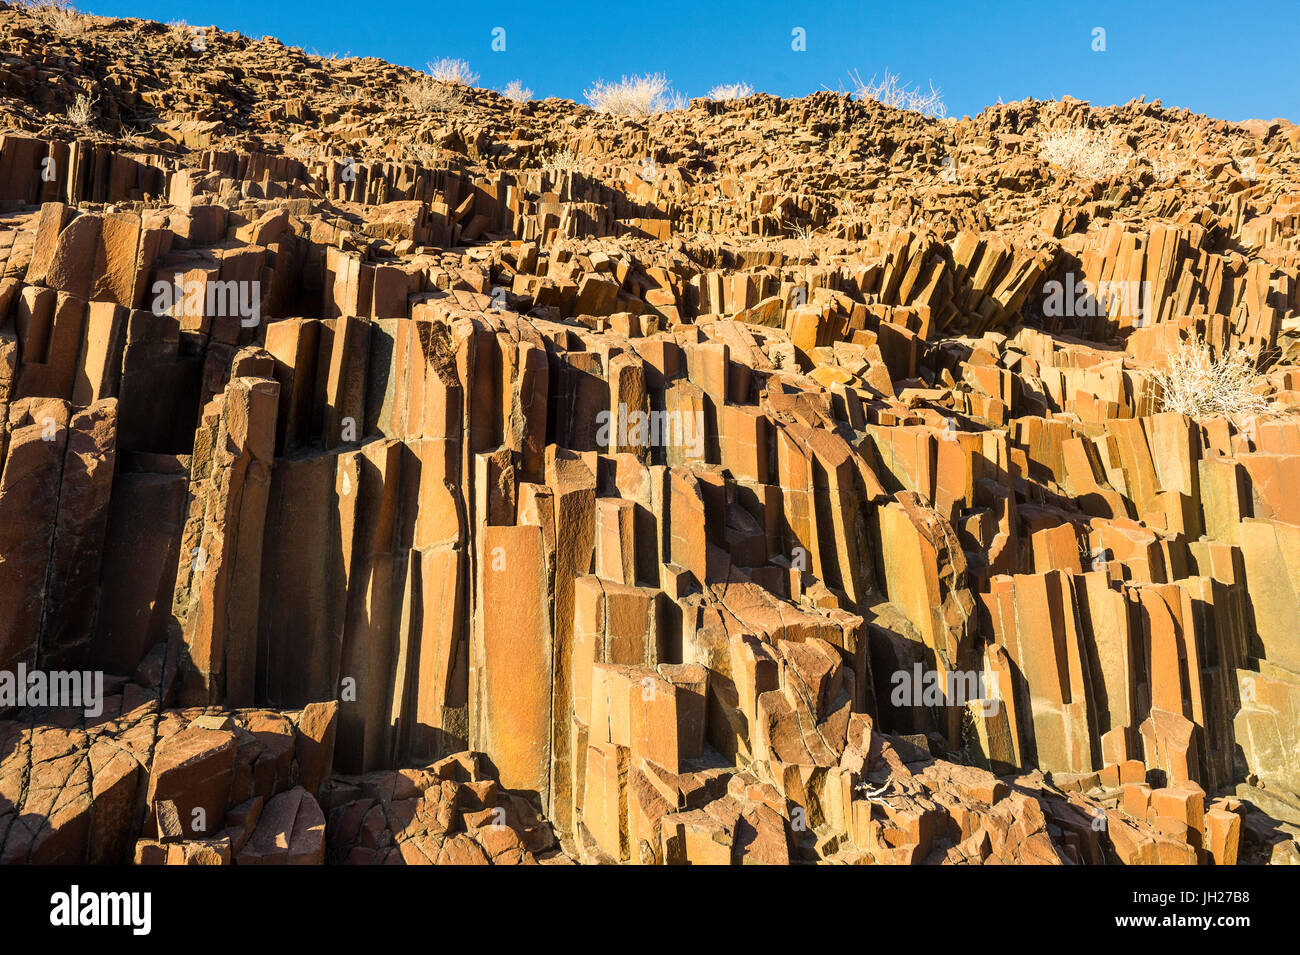 Unusual Organ Pipes monument, Twyfelfontein, Namibia, Africa - Stock Image